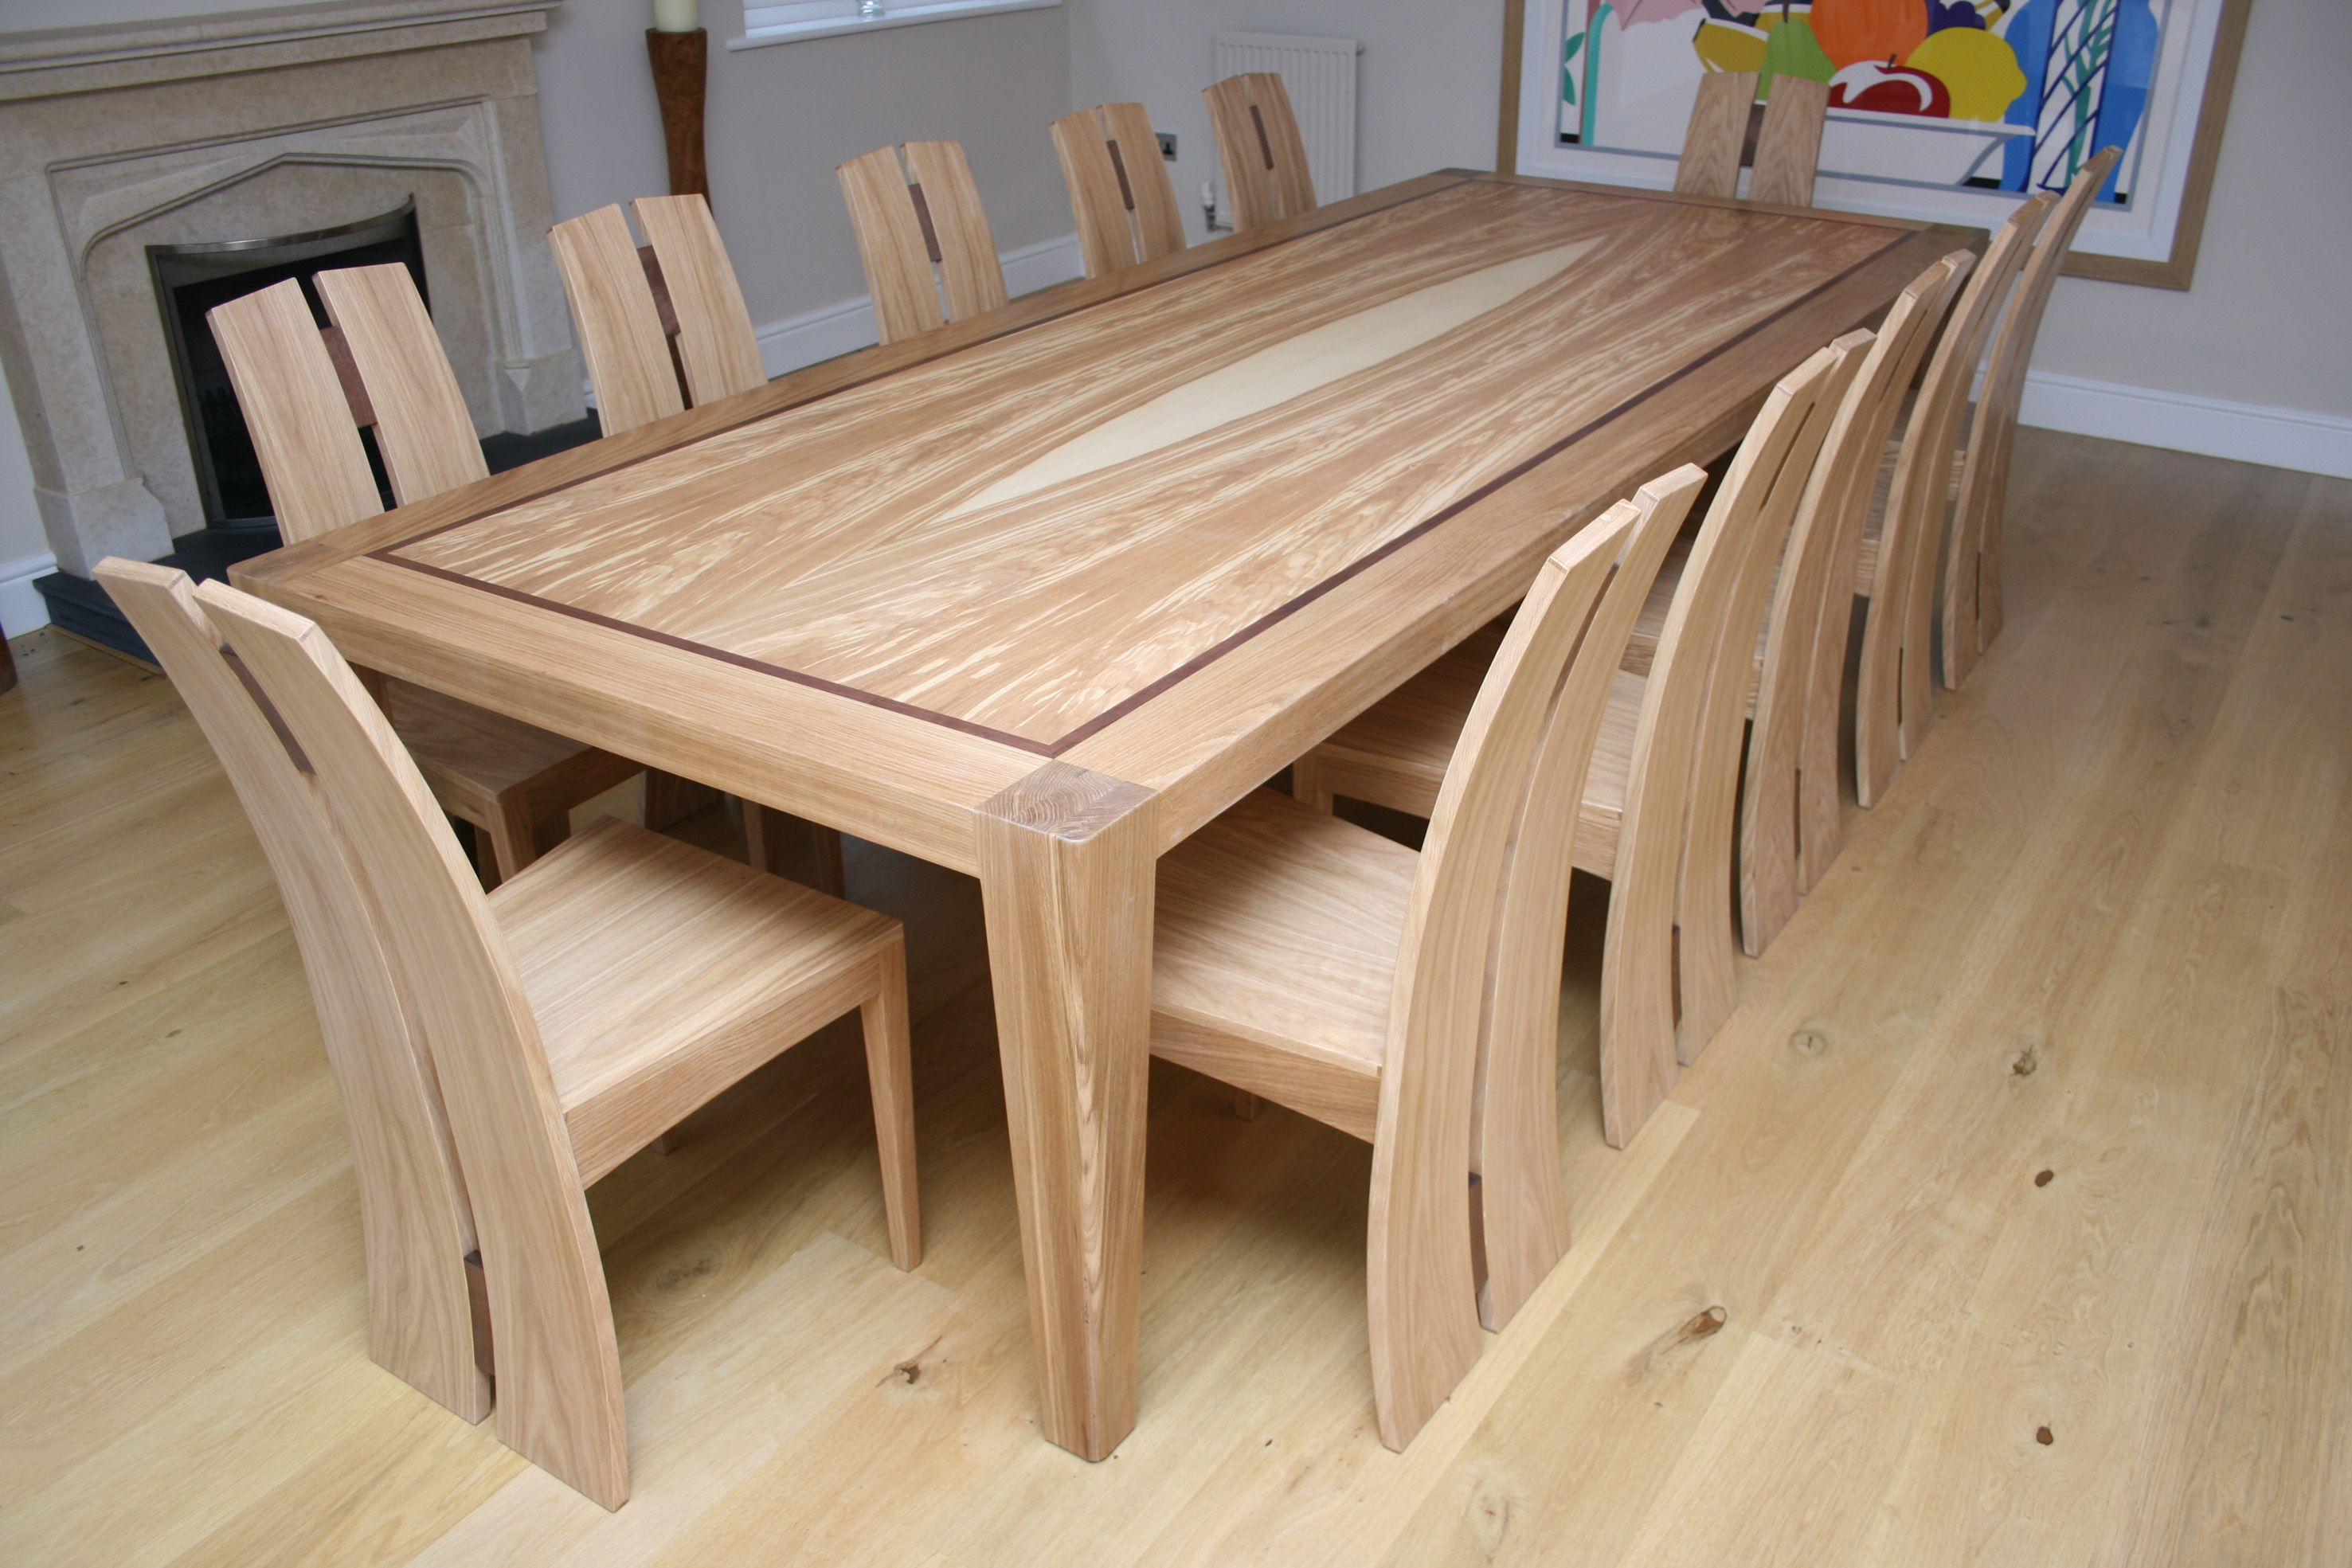 Breathtaking dining room table 12 seater Wooden dining